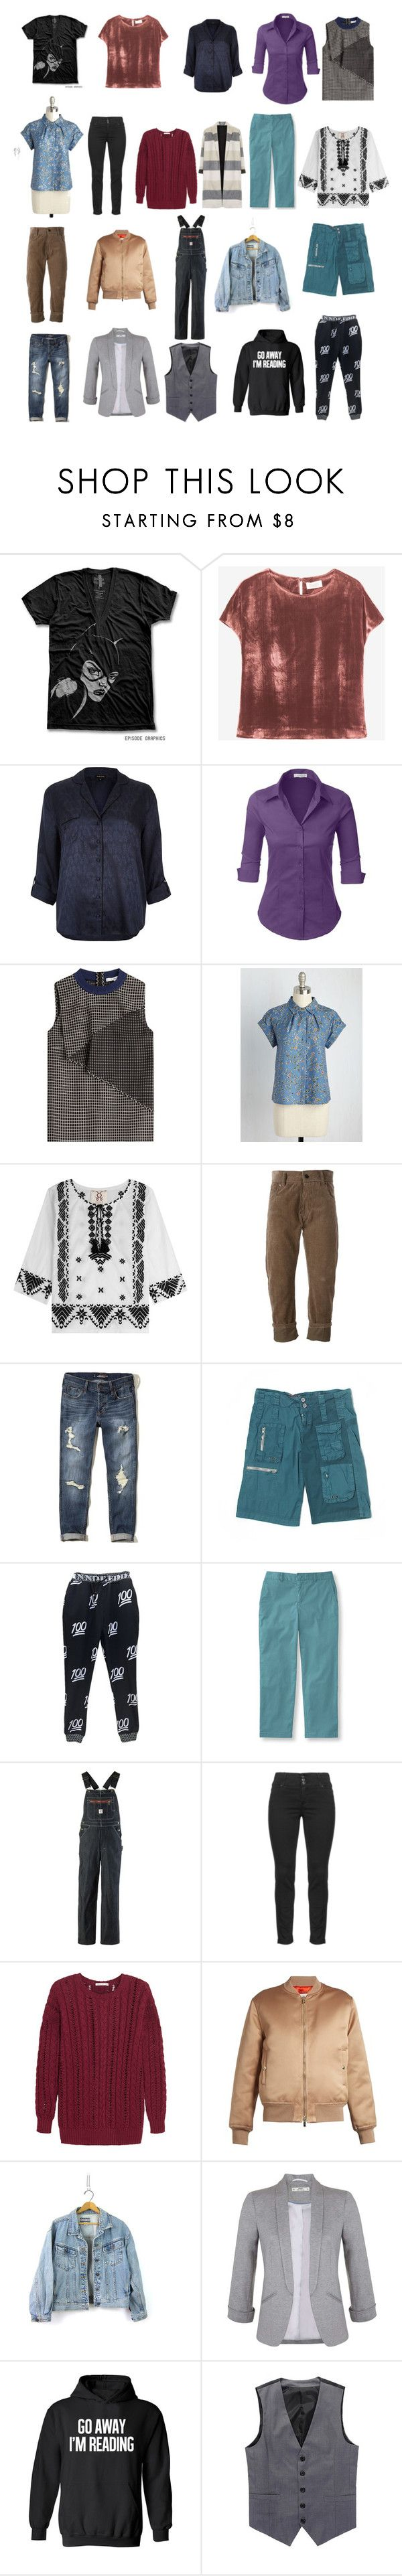 """FemBoi 7 Capsule Pt. 1"" by veganchefmarie on Polyvore featuring Toast, River Island, LE3NO, Carven, Figue, Haider Ackermann, Hollister Co., Pete & Greta, L.L.Bean and Pointer Brand"